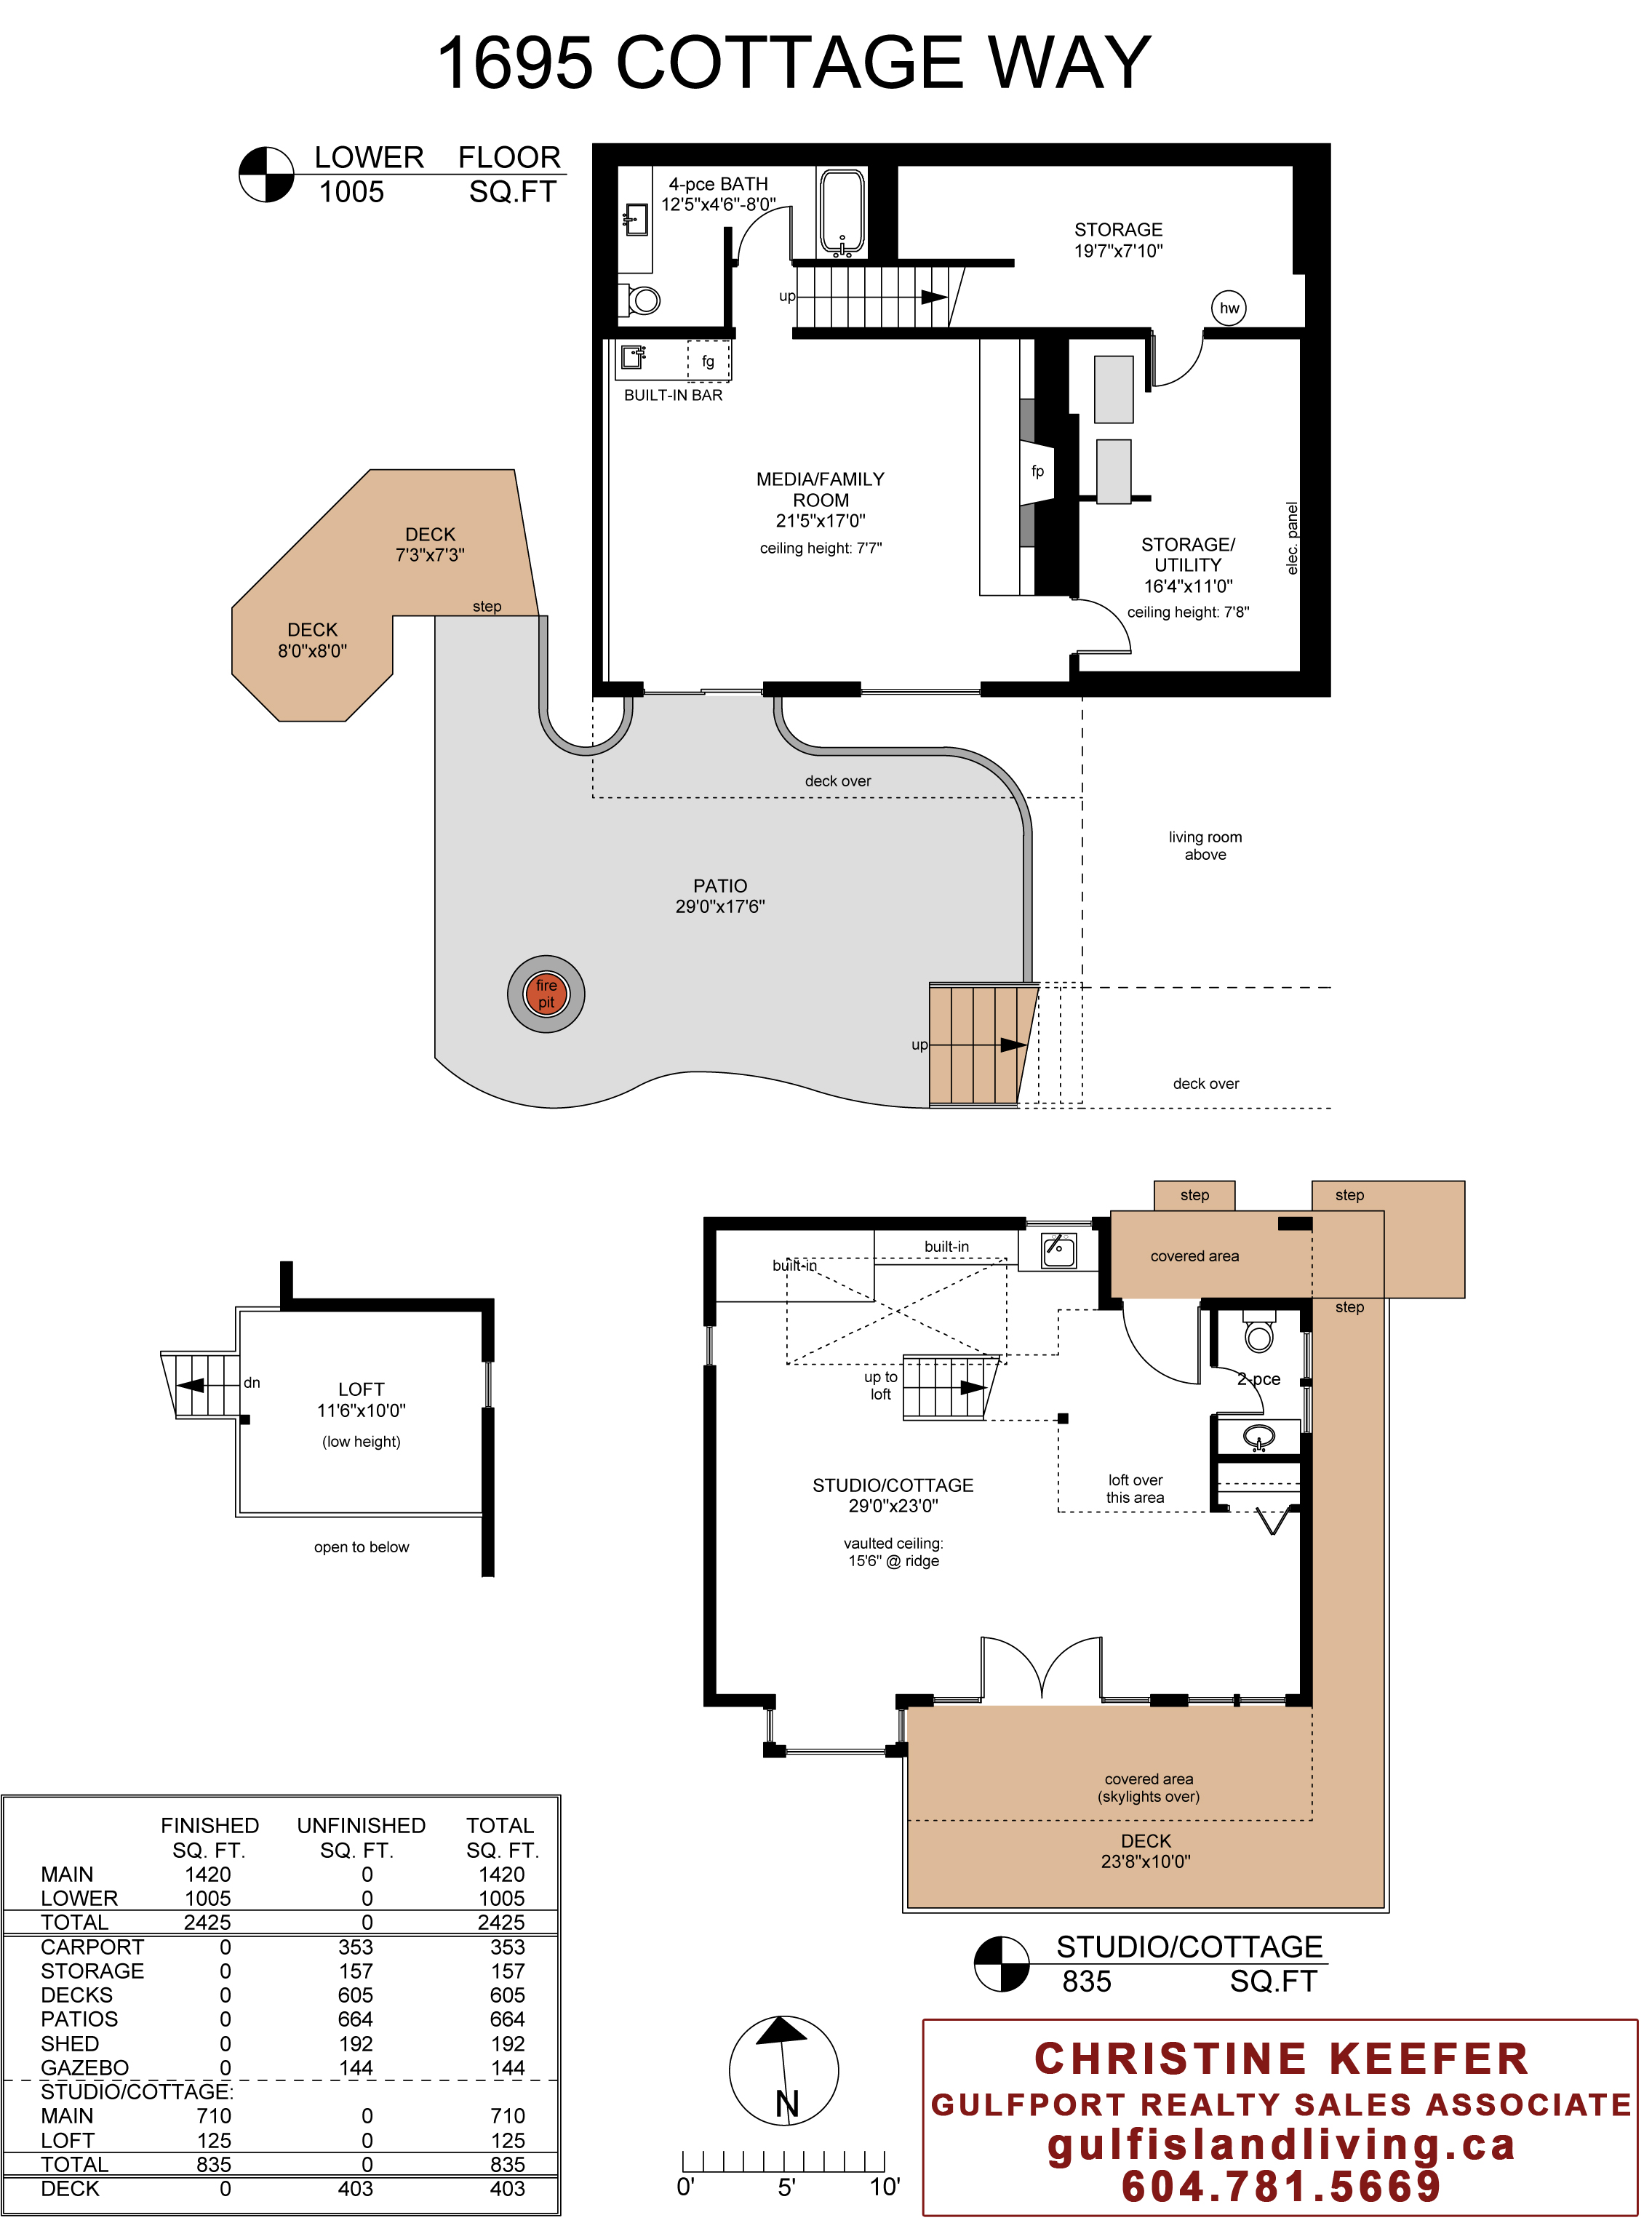 FLOOR PLAN - LOWER.jpg